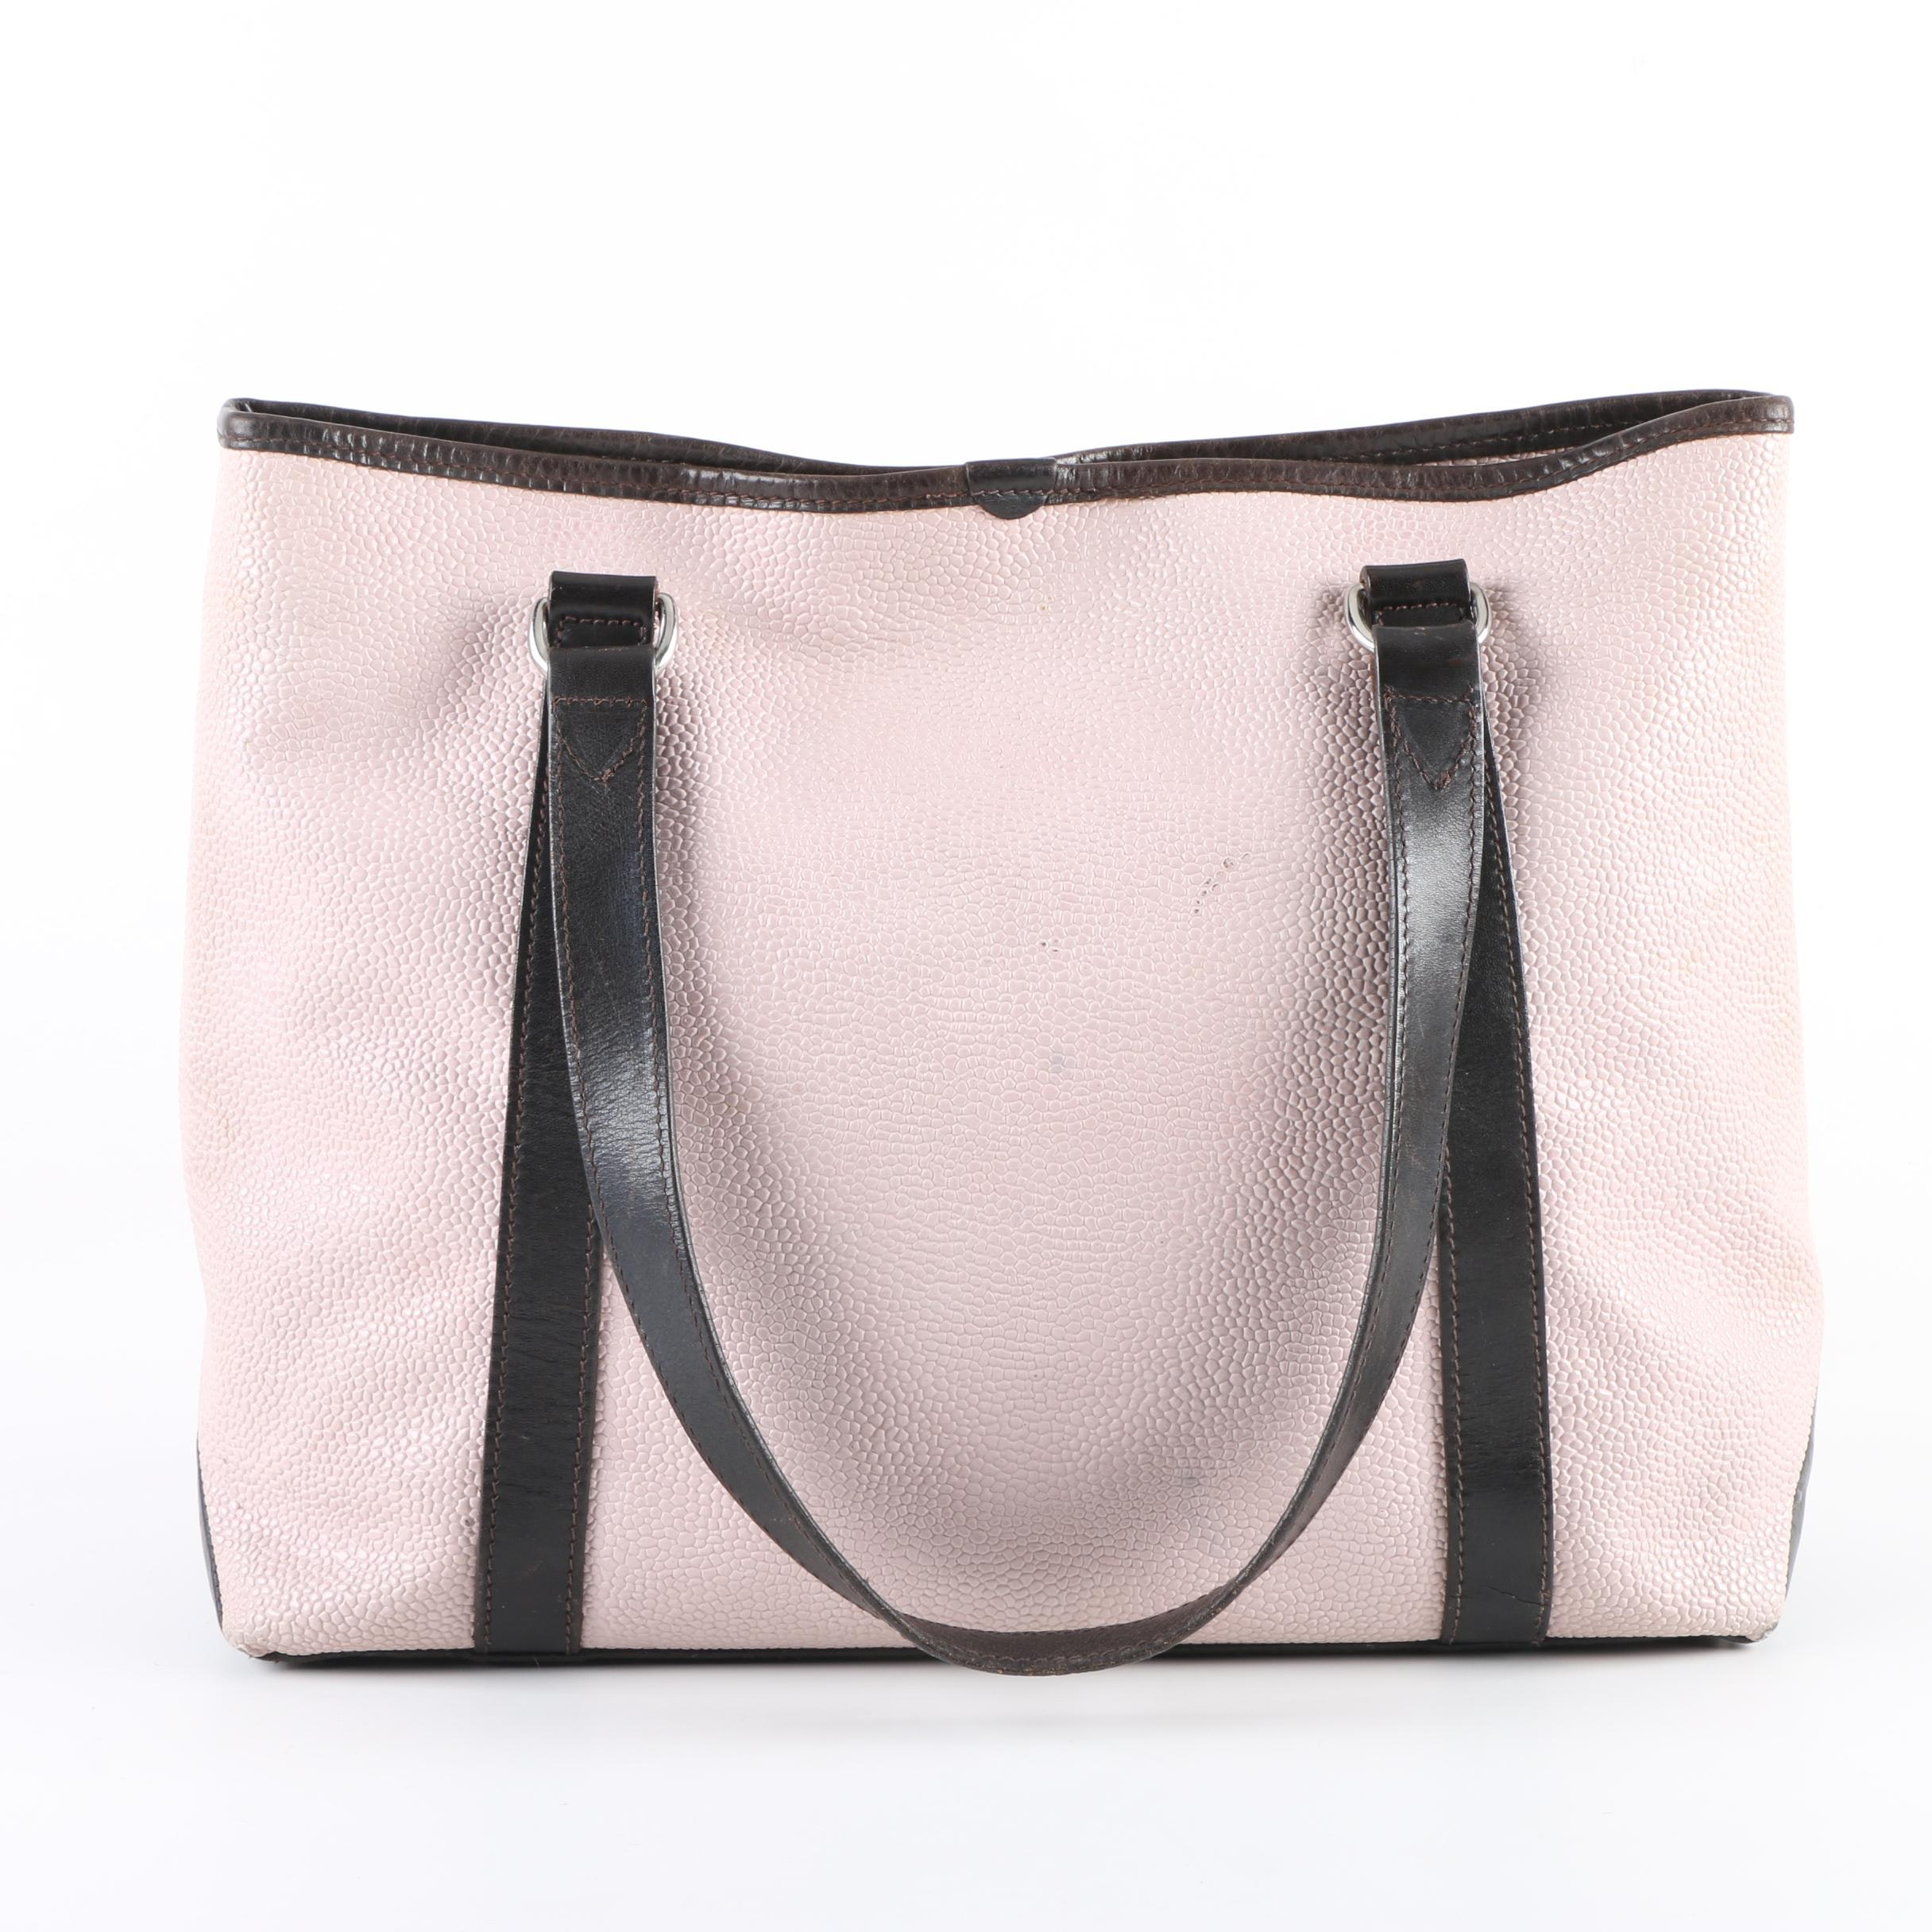 Mulberry Pink and Brown Pebbled Leather Shoulder Bag